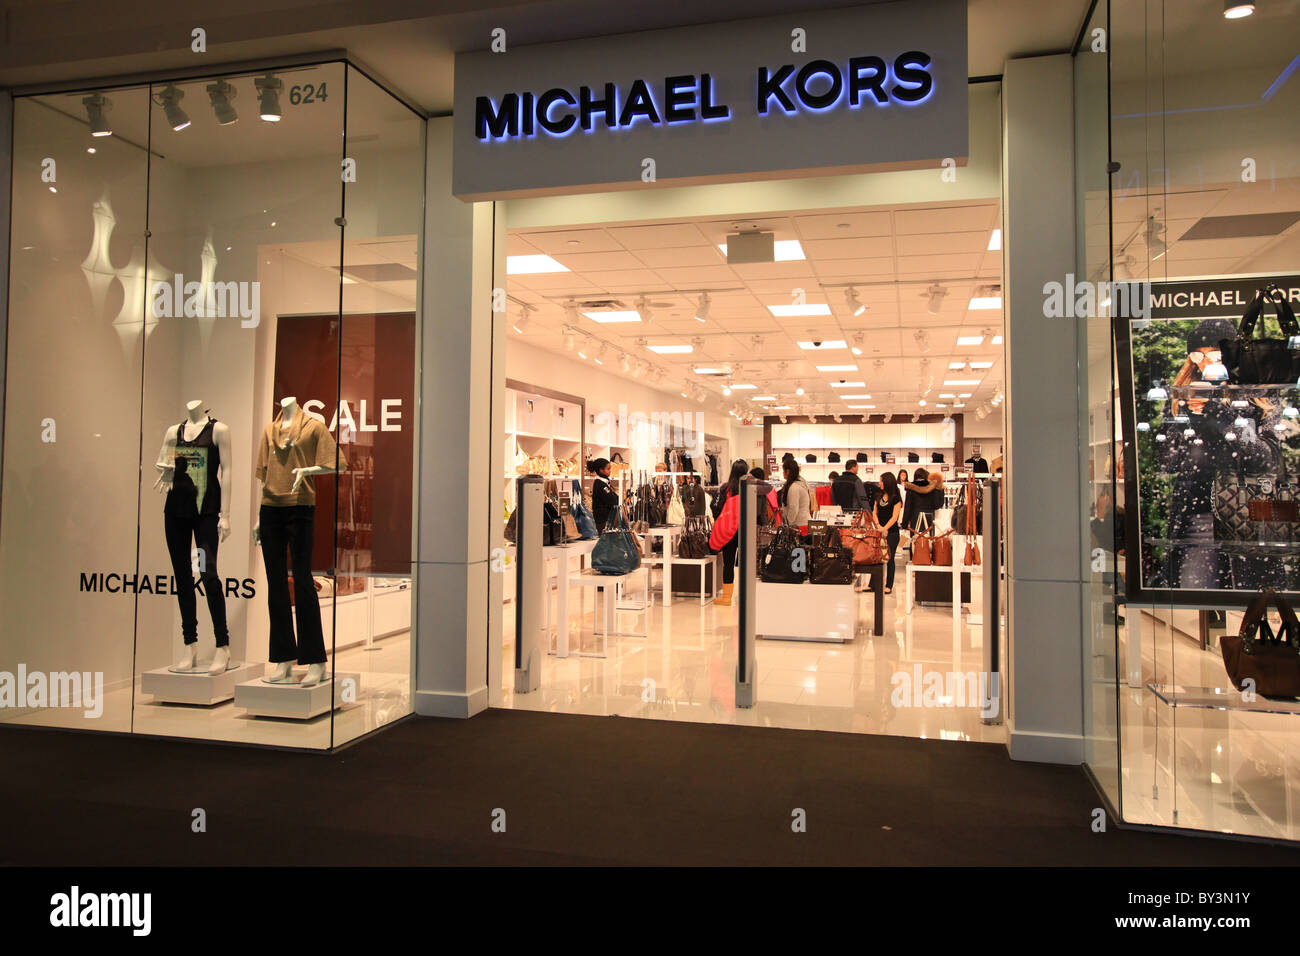 "Already a legend in American sportswear, Michael Kors launched diffusion label MICHAEL Michael Kors in A collection of stylish yet affordable ready-to- wear, swimwear, and accessories, MICHAEL Michael Kors reinforces the brand 's core philosophy: ""powerful, ."